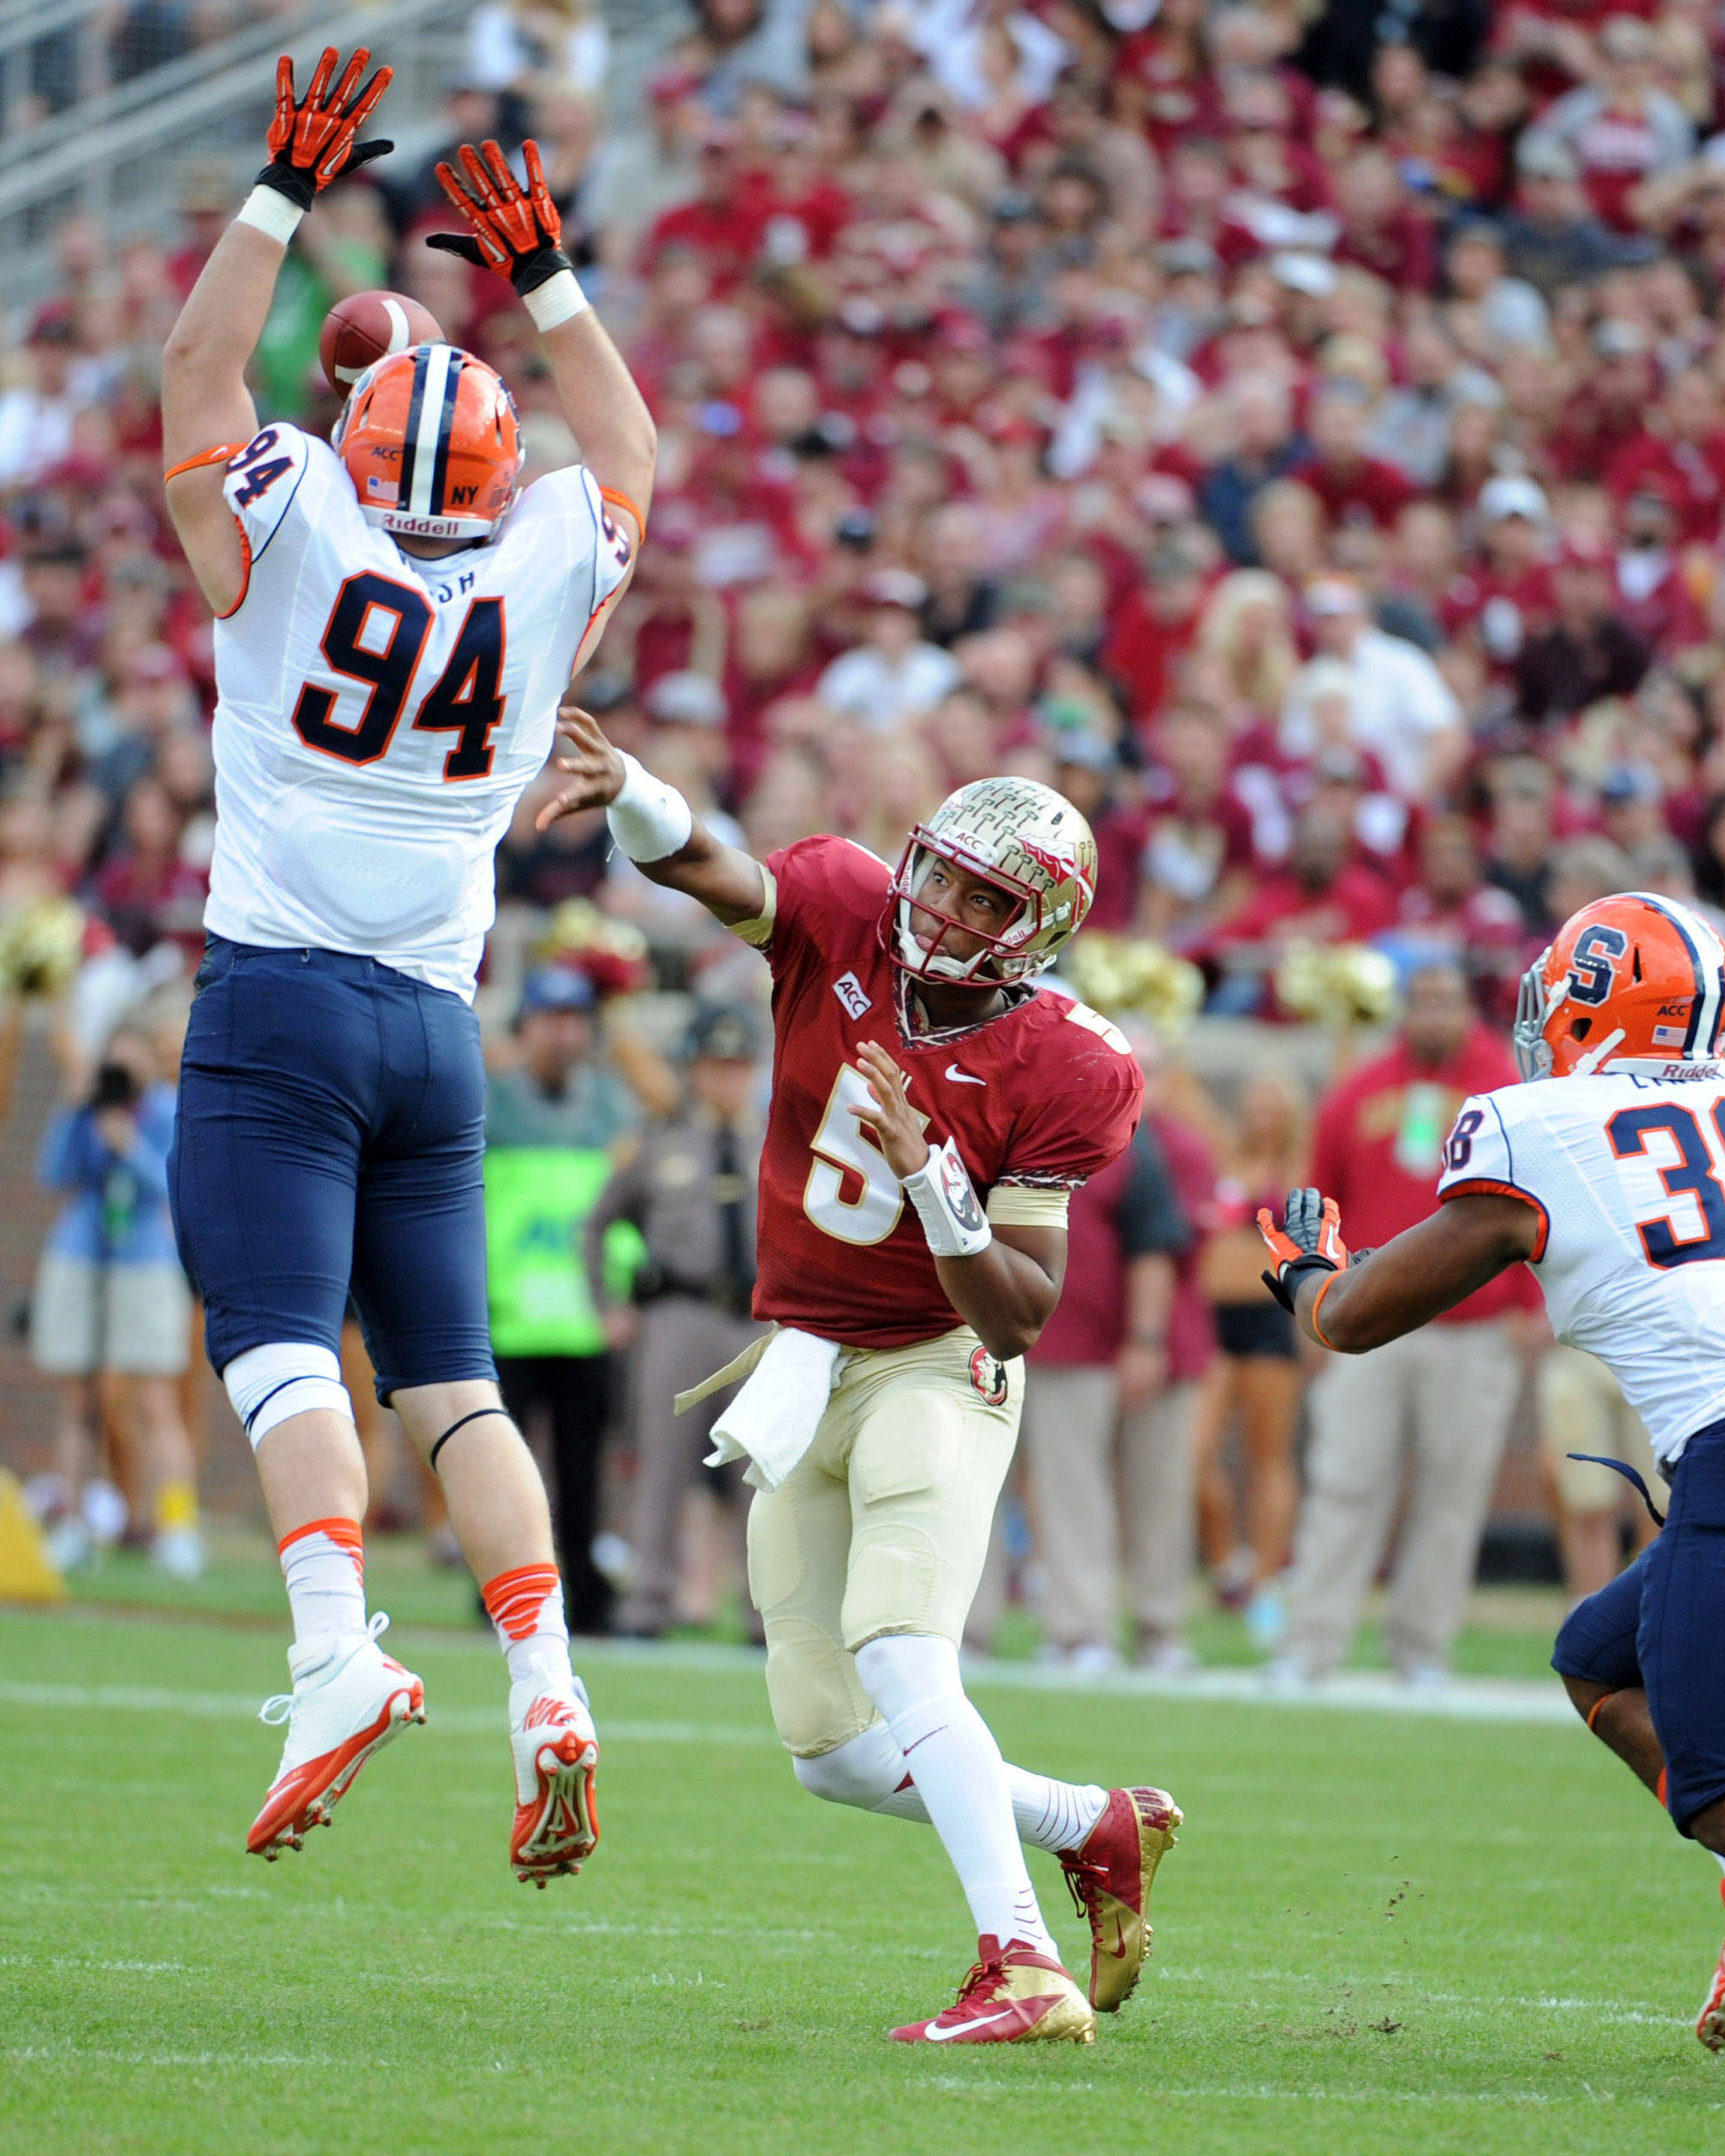 Jameis Winston (5) throws the ball over Syracuse Orange defensive end Robert Welsh (94) during the first half. Mandatory Credit: Melina Vastola-USA TODAY Sports